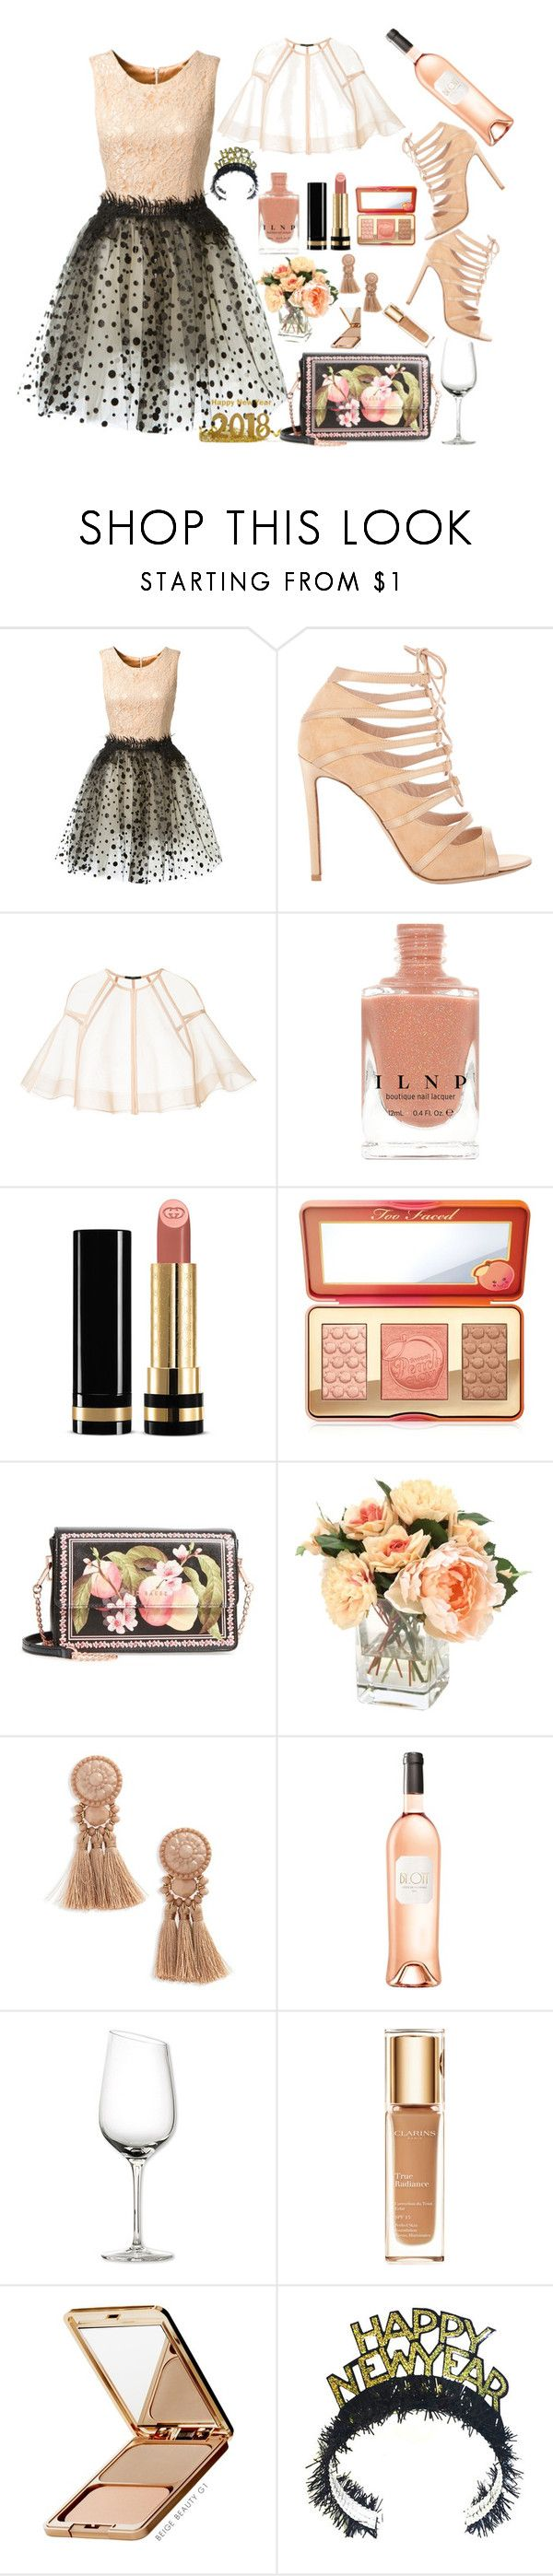 """Peachy eve's"" by karito-pinup ❤ liked on Polyvore featuring Loyd/Ford, Gianvito Rossi, Alex Perry, Gucci, Too Faced Cosmetics, Ted Baker, Topshop, Eva Solo, Clarins and Napoleon Perdis"